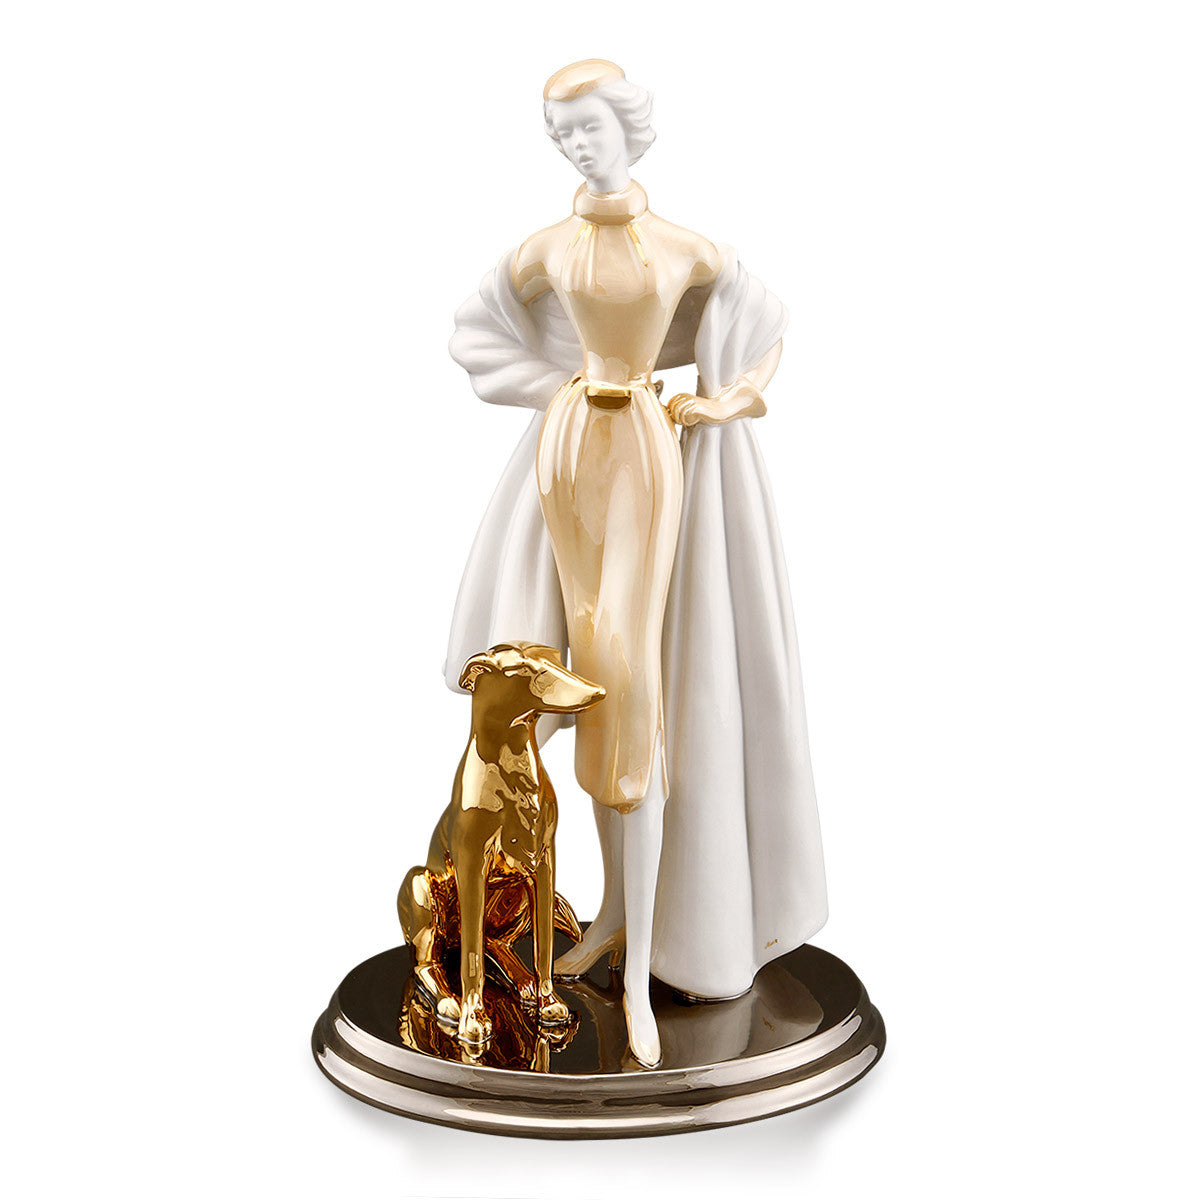 Porcelain Figurines-ceramic lady figurines- collectible ceramic-home decor-home accessories